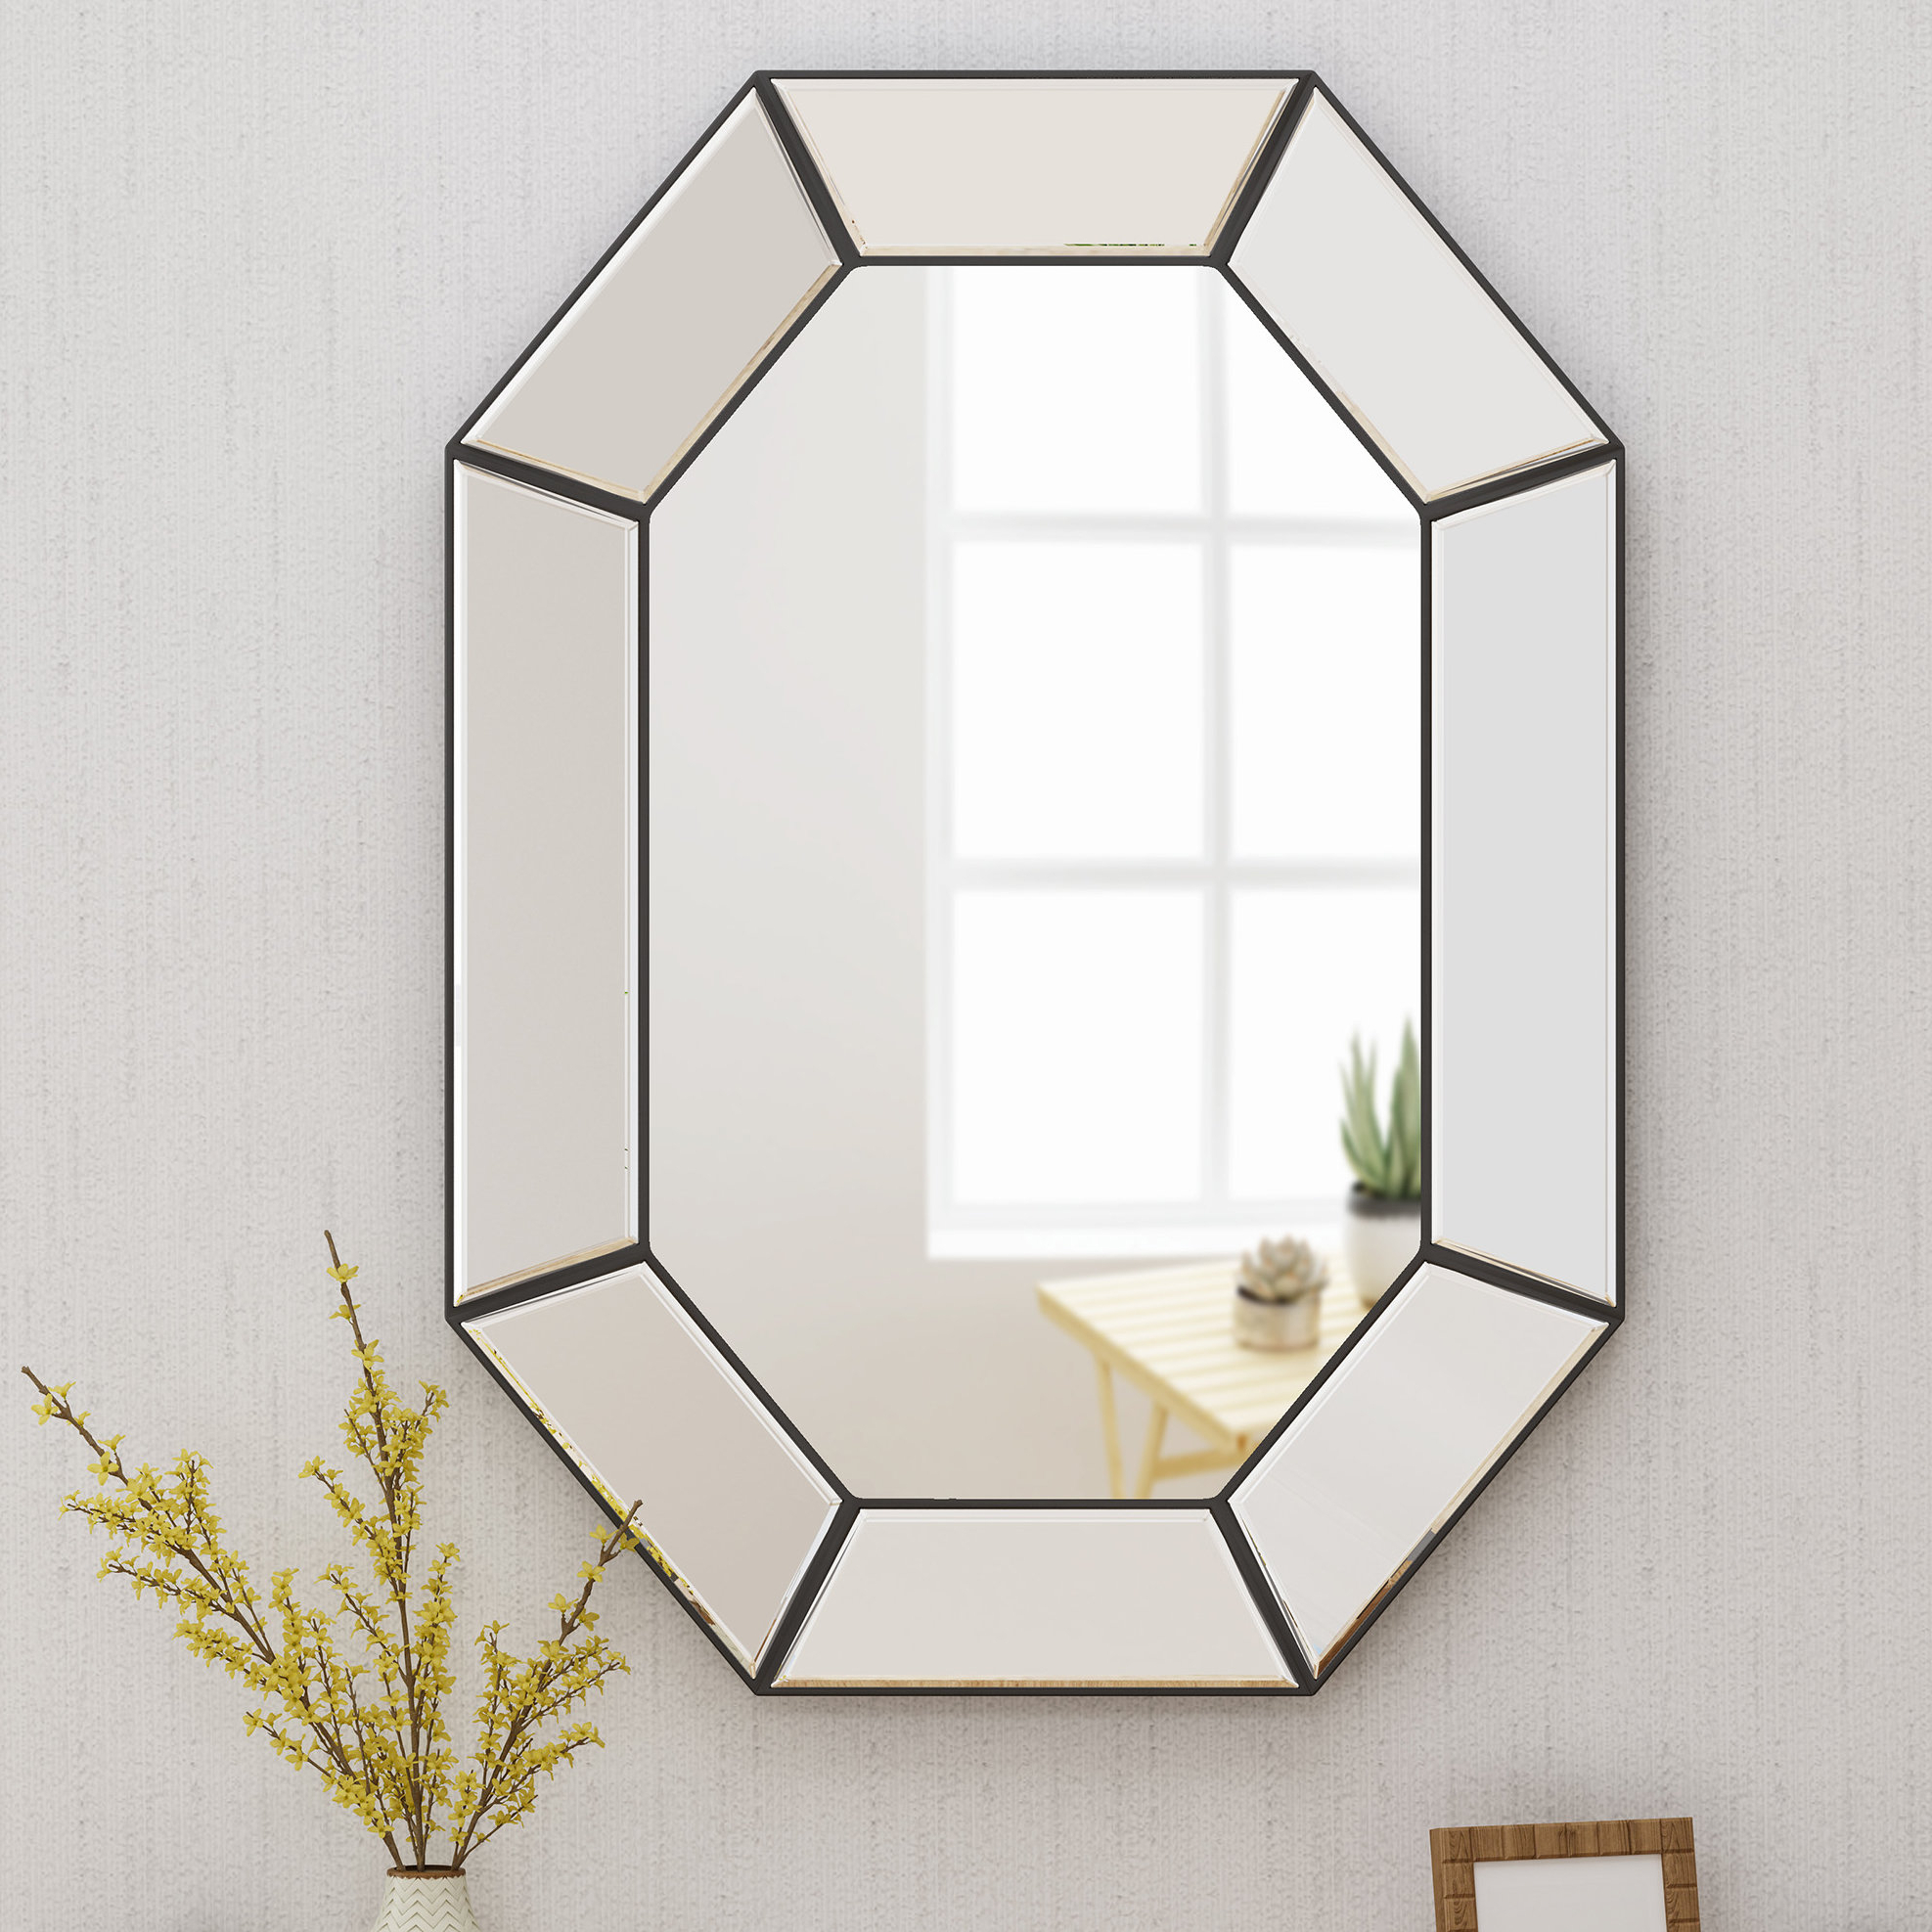 2019 Haverstraw Glam Accent Mirror Intended For Gia Hexagon Accent Mirrors (View 1 of 20)